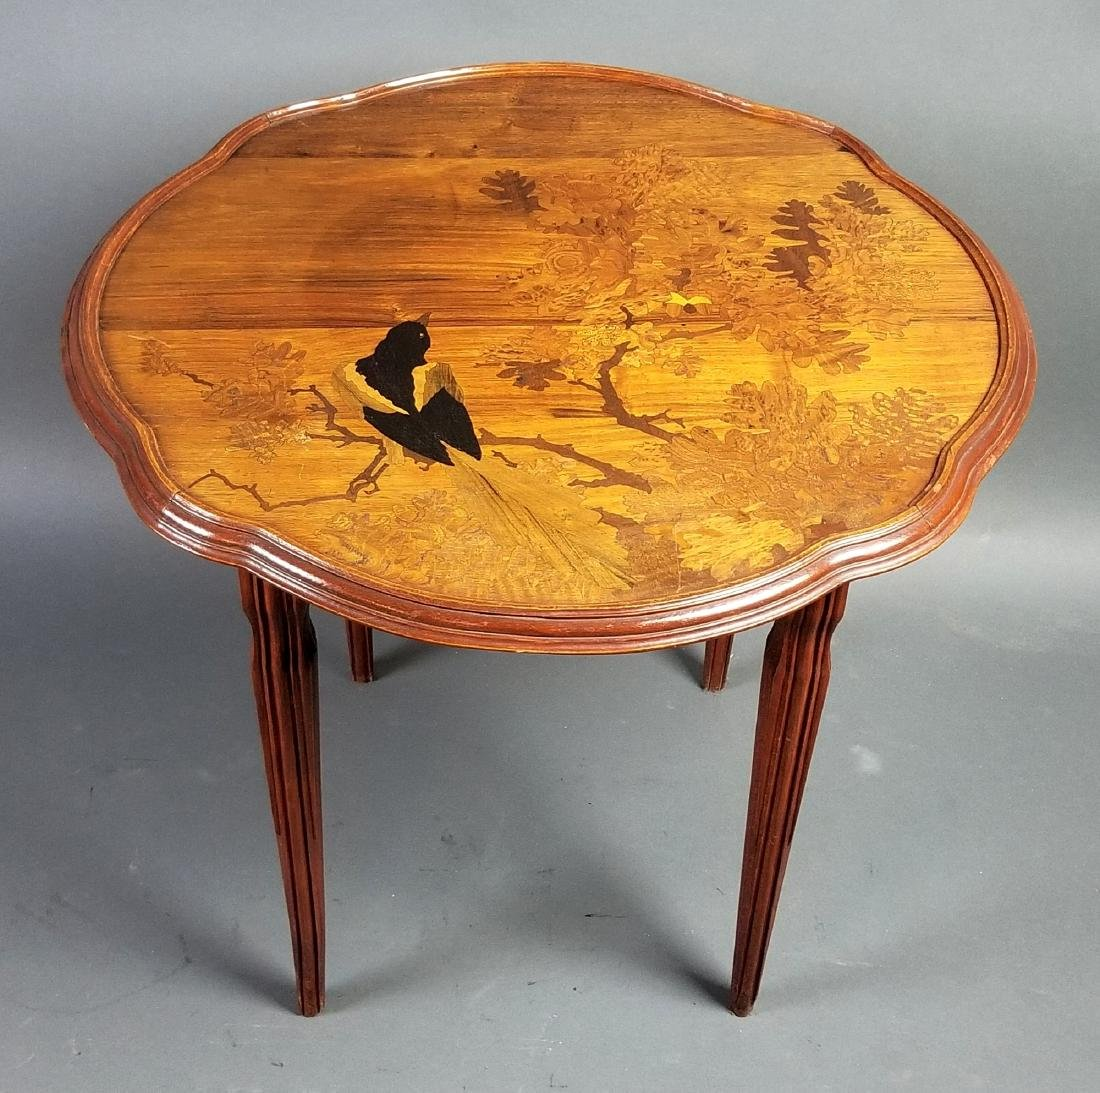 Galle French Inlaid Wooden End Table, Signed